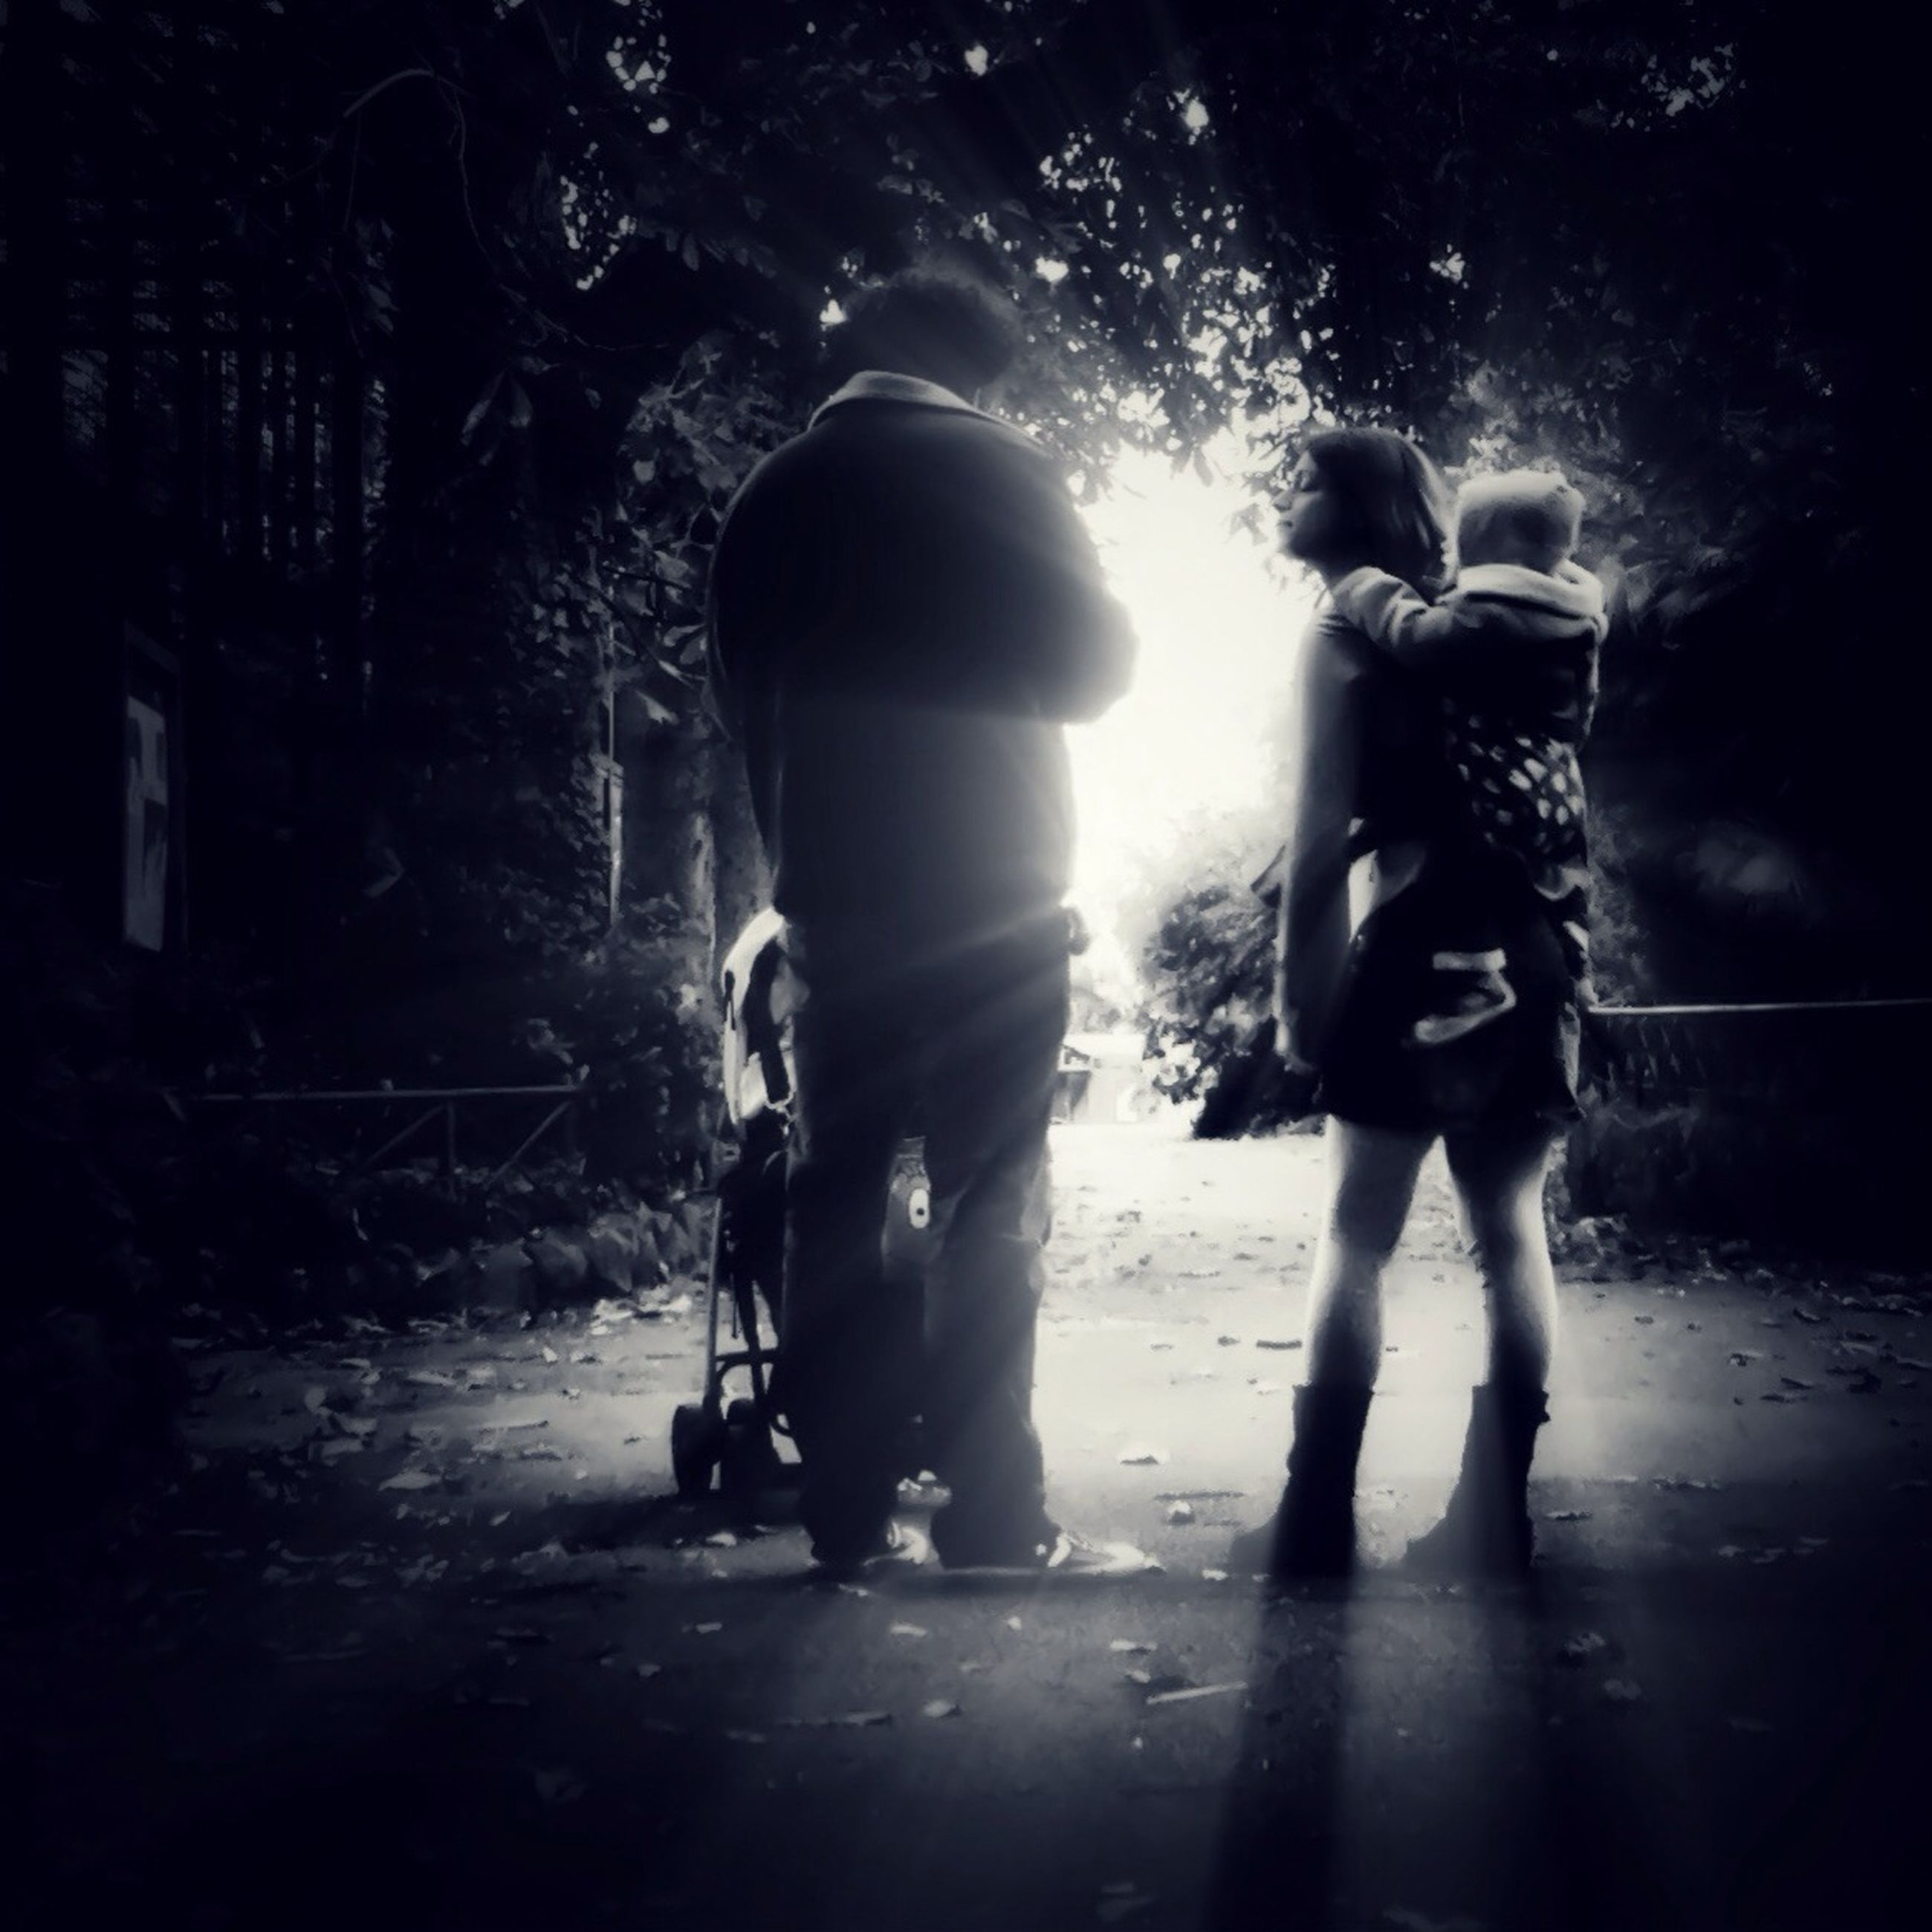 lifestyles, togetherness, bonding, leisure activity, love, full length, men, rear view, family, childhood, boys, family with one child, girls, holding hands, walking, friendship, silhouette